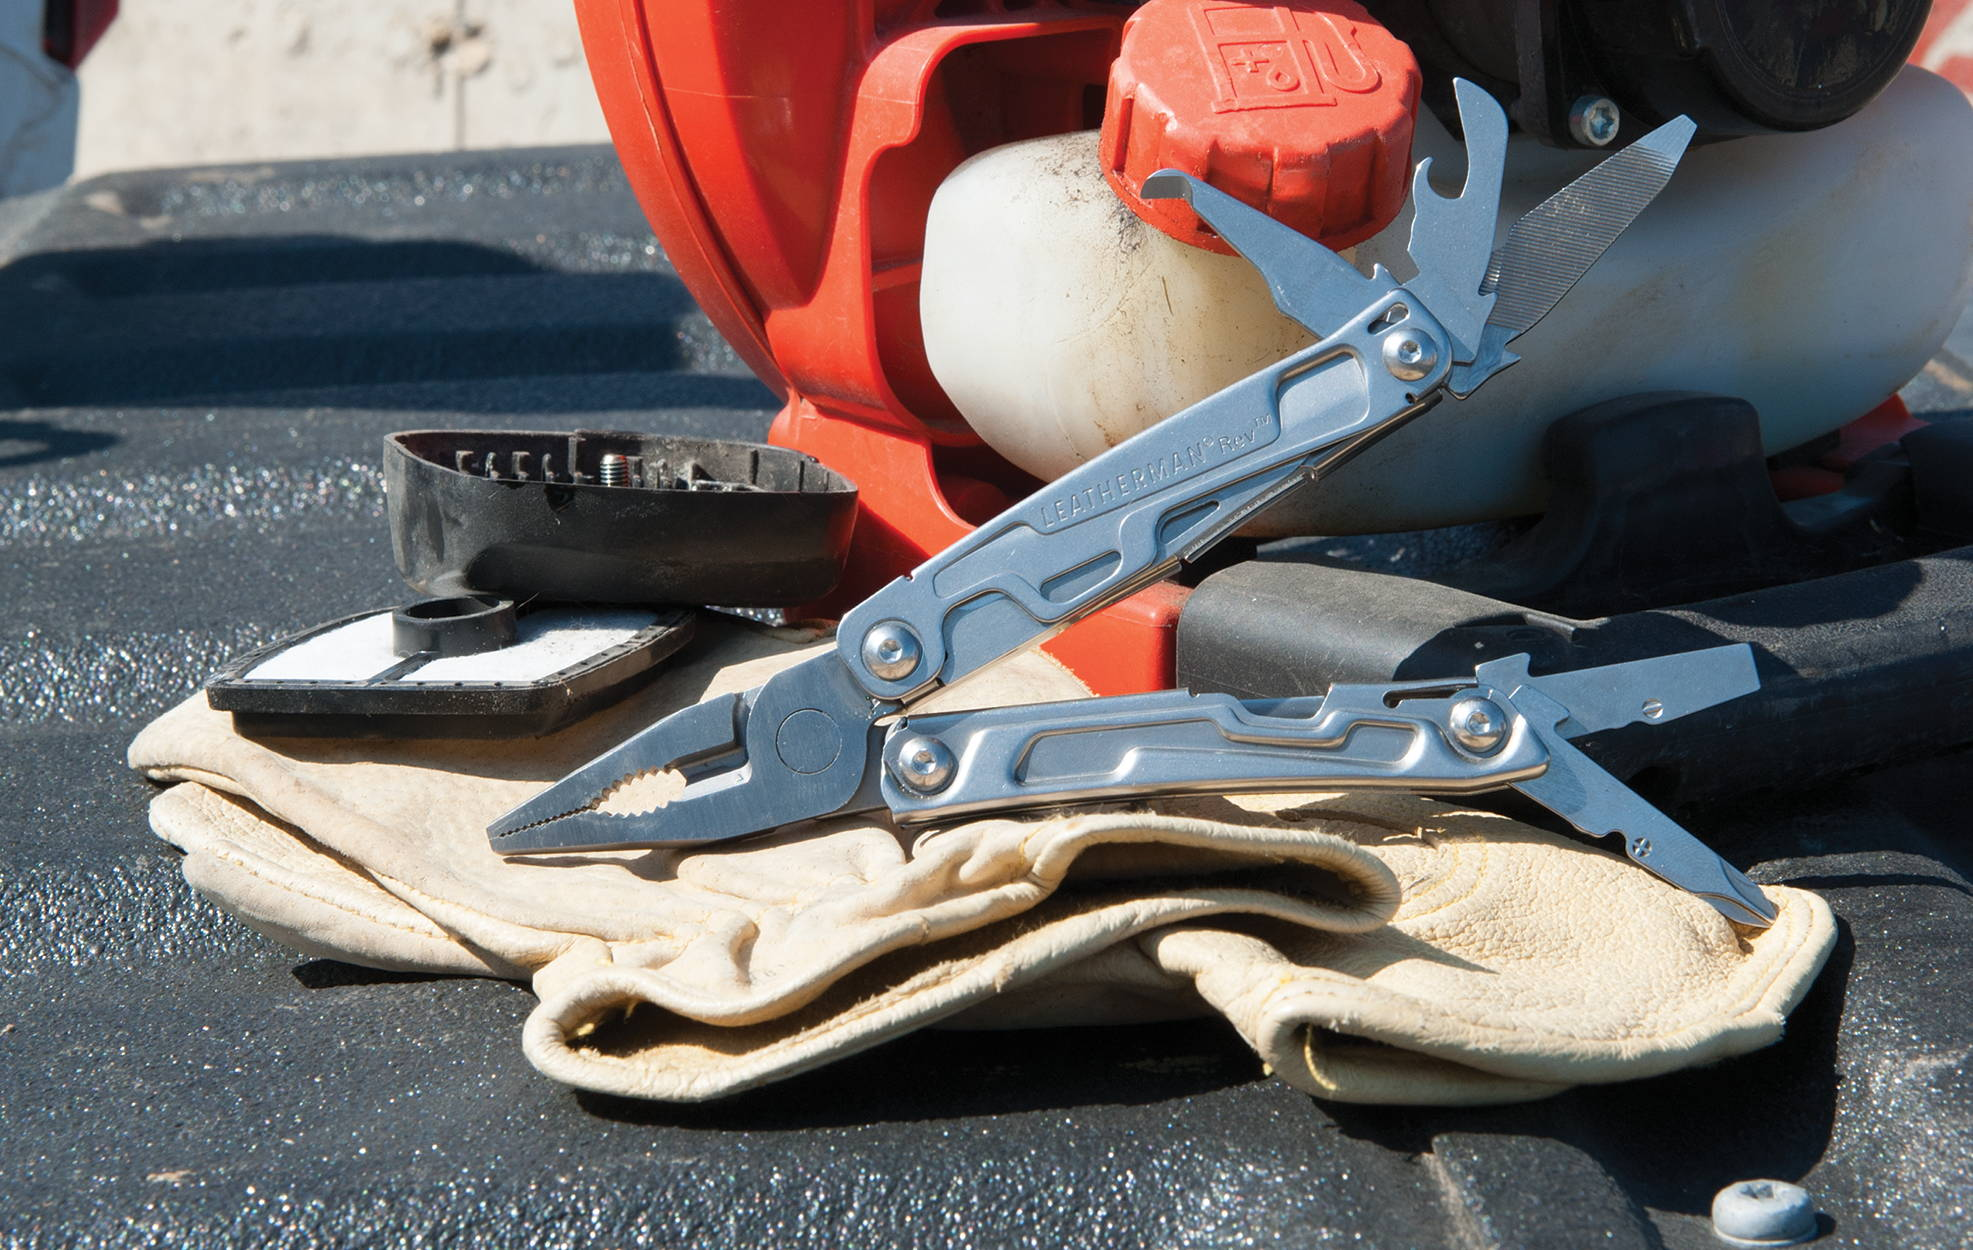 Multi-purpose tool on top of work gloves in truck bed